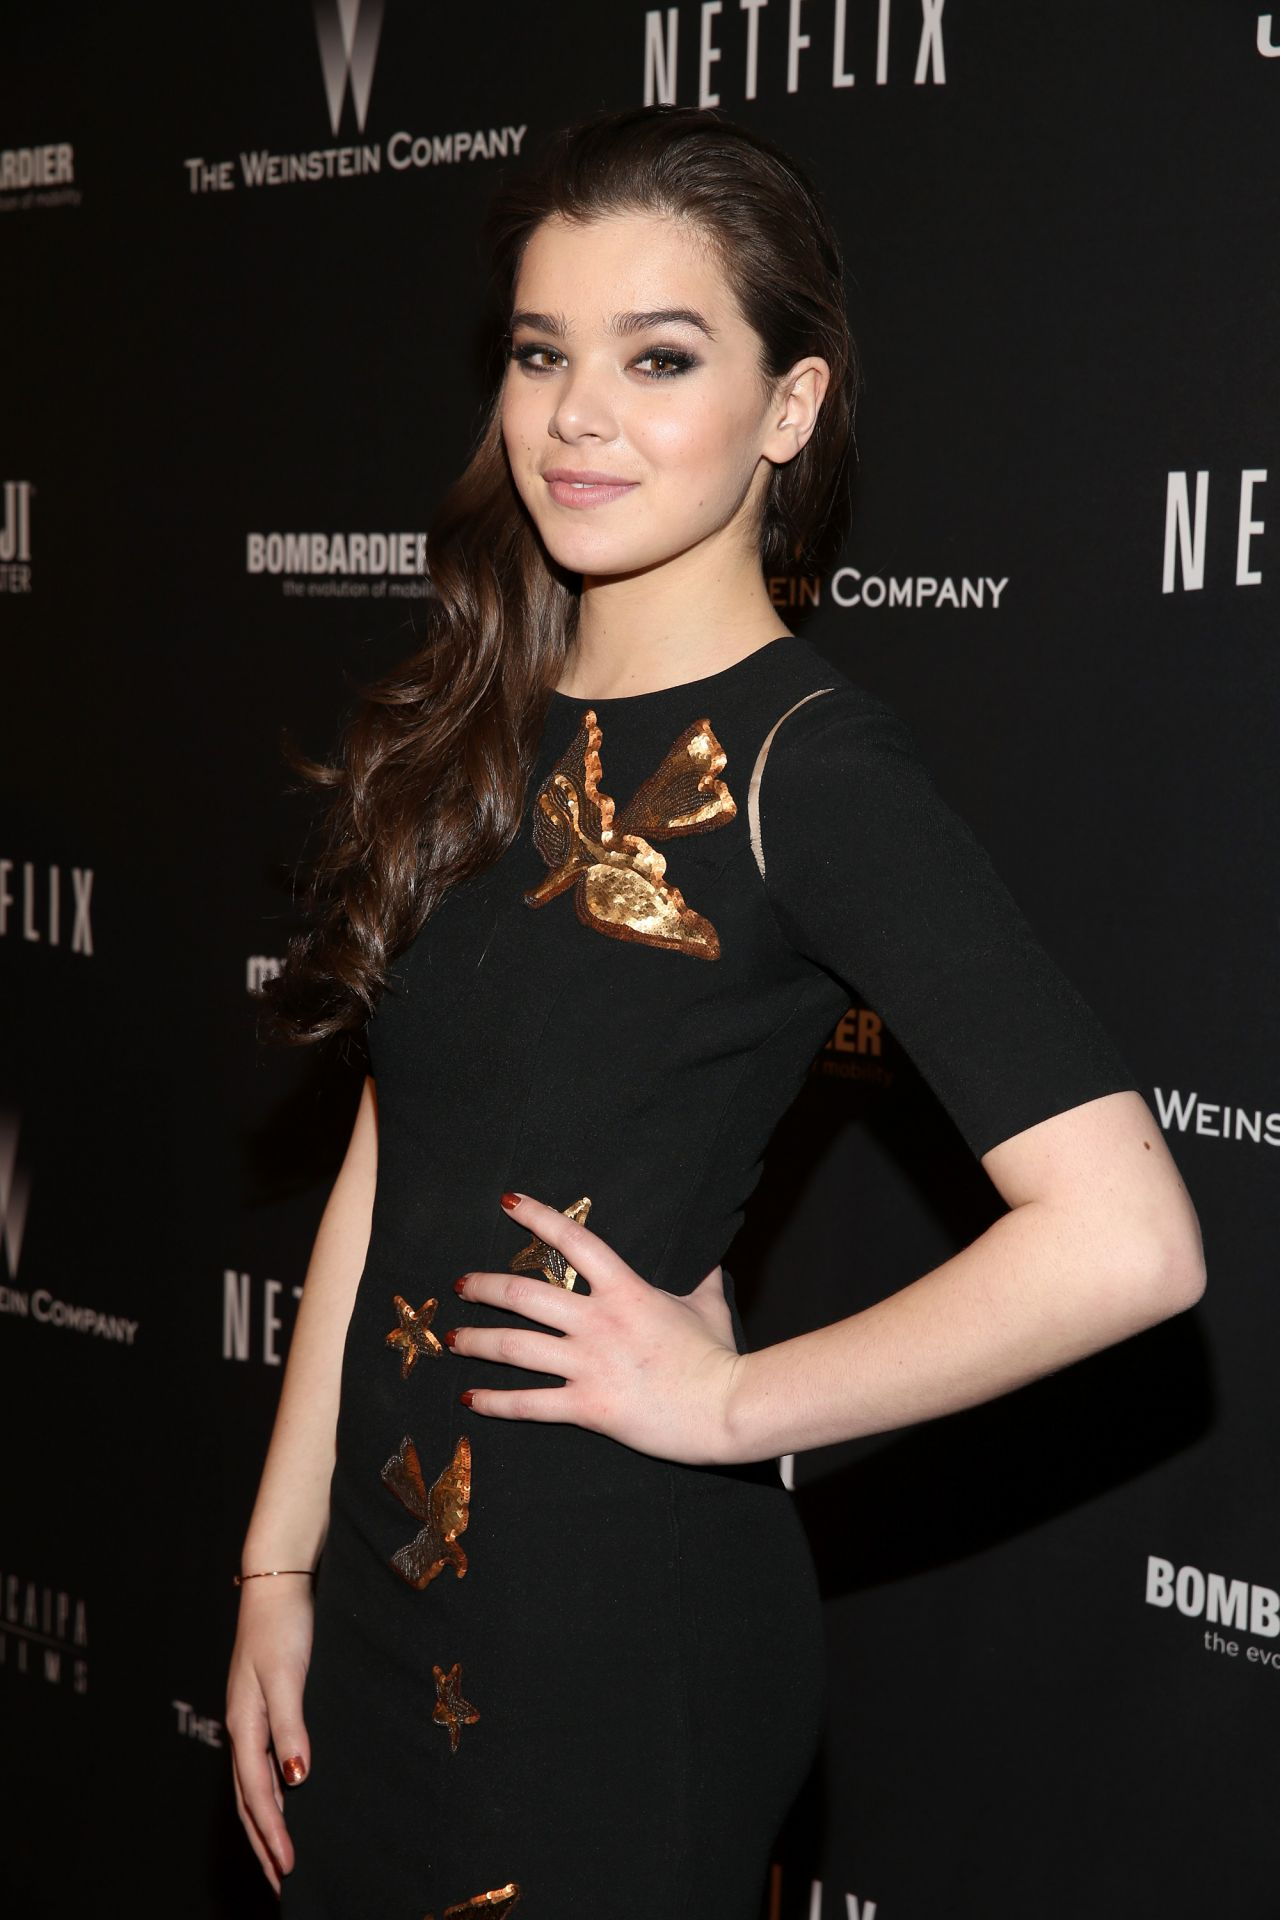 Hailee Steinfeld Wears Andrew Gn at The Weinstein Company & Netflix